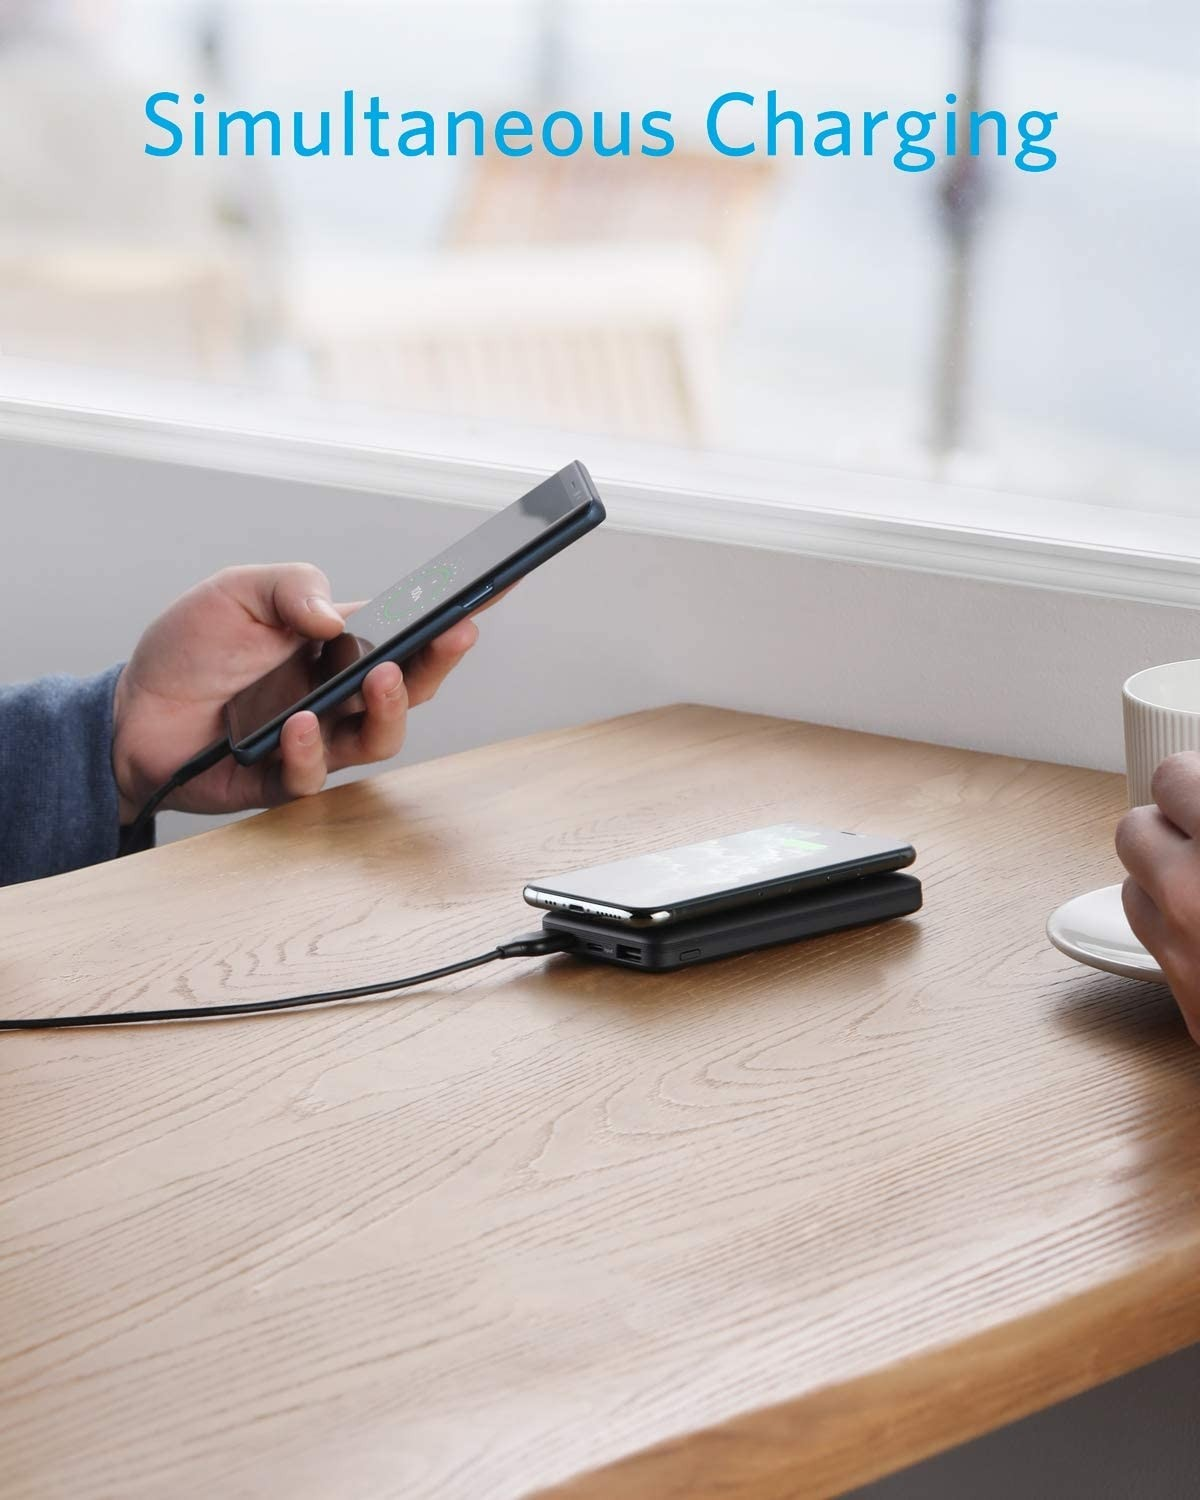 ANKER PowerCore Essential 10000mAh The Hybrid Wireless and Portable Charger - Black, A1615T11